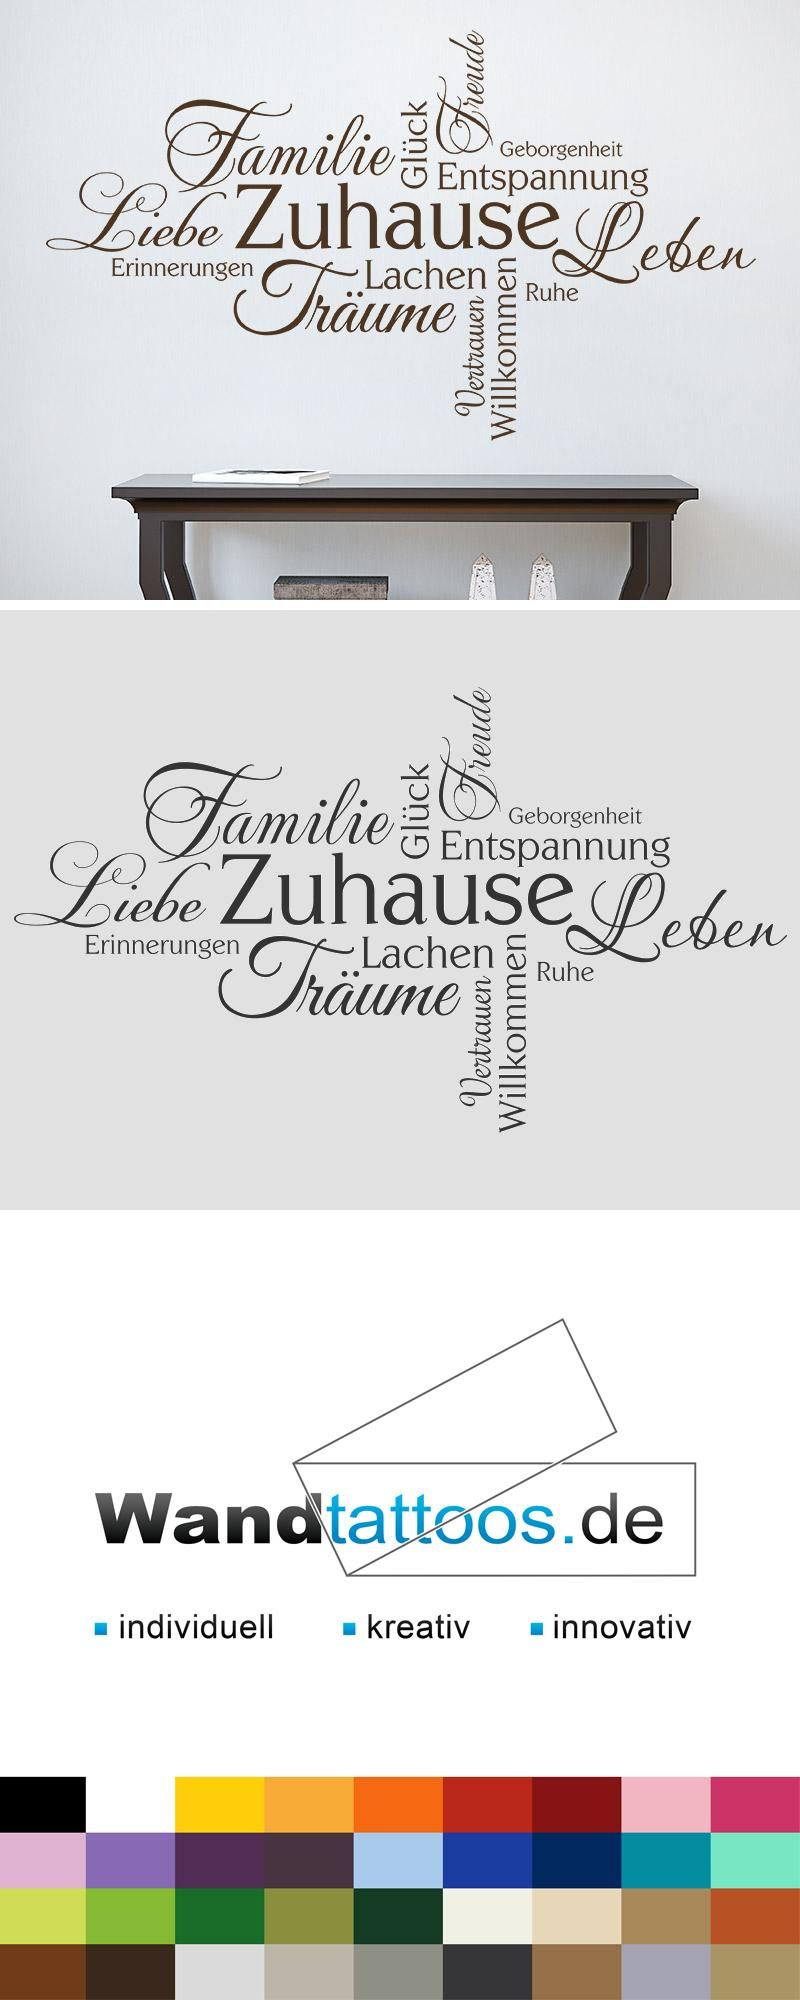 wandtattoo zuhause wortwolke familie gl ck love pinterest wand tattoo. Black Bedroom Furniture Sets. Home Design Ideas